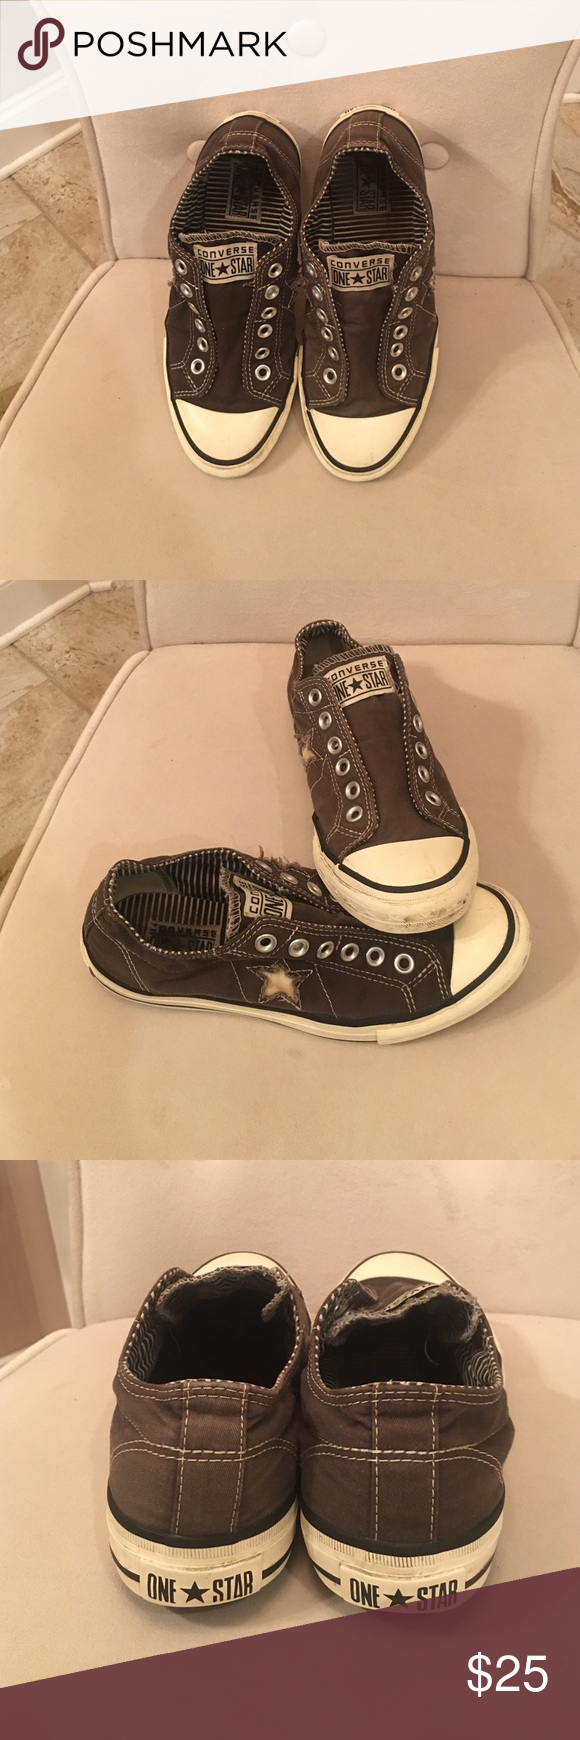 Shoes Converse Dark Gray with cream stars on side. Great for just kicking it back or a Sat. at the park. You will surely loves these as your to go shoes. No laces as they have a stretch band that fits comfy on top of your feet. Converse Shoes Sneakers